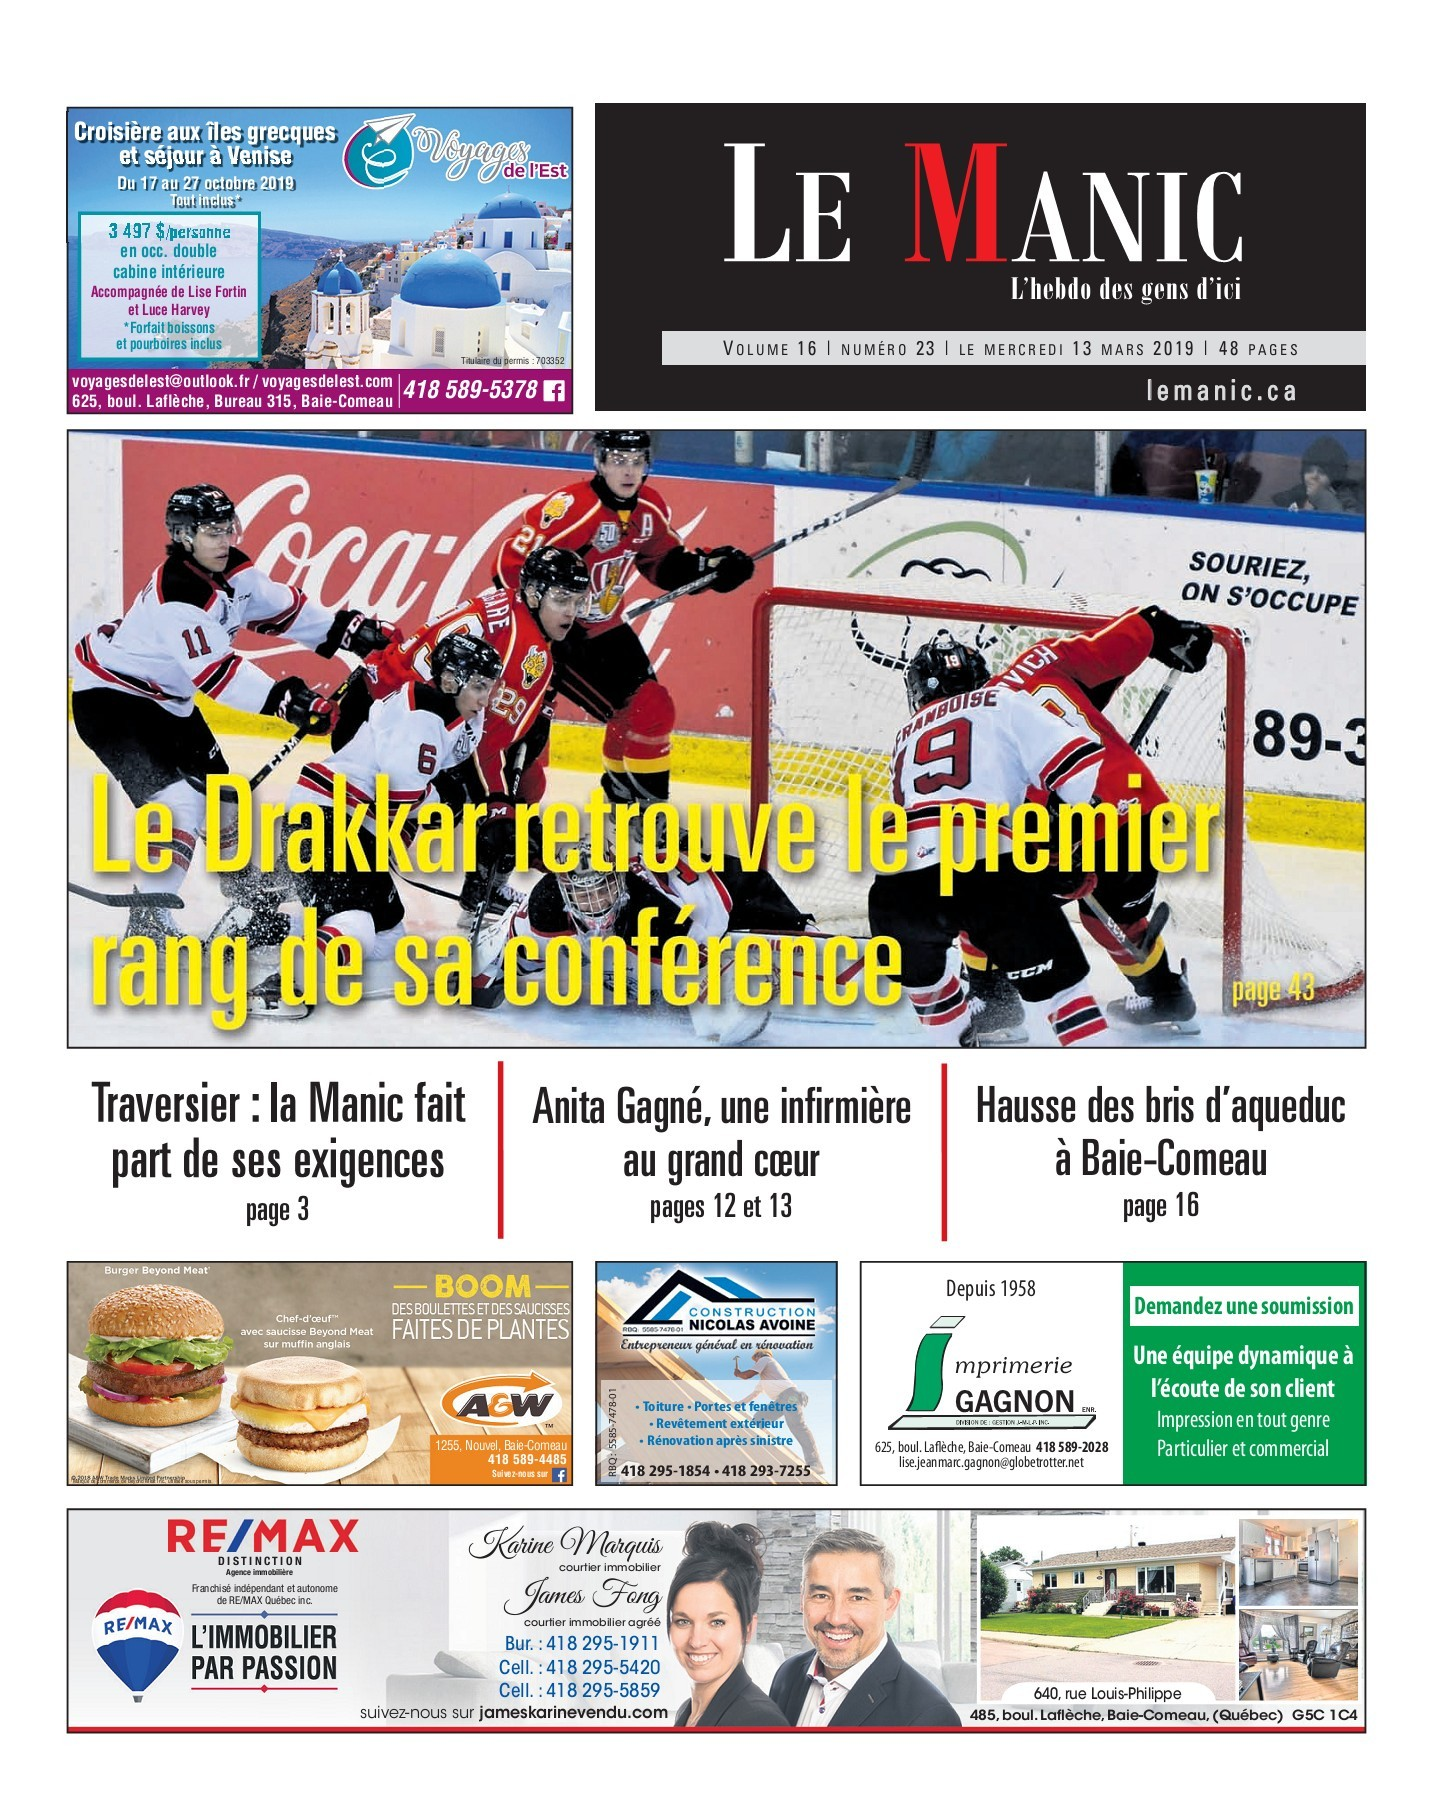 Meubles Accent Dolbeau-mistassini Le Manic 13 Mars 2019 Pages 1 48 Text Version Fliphtml5